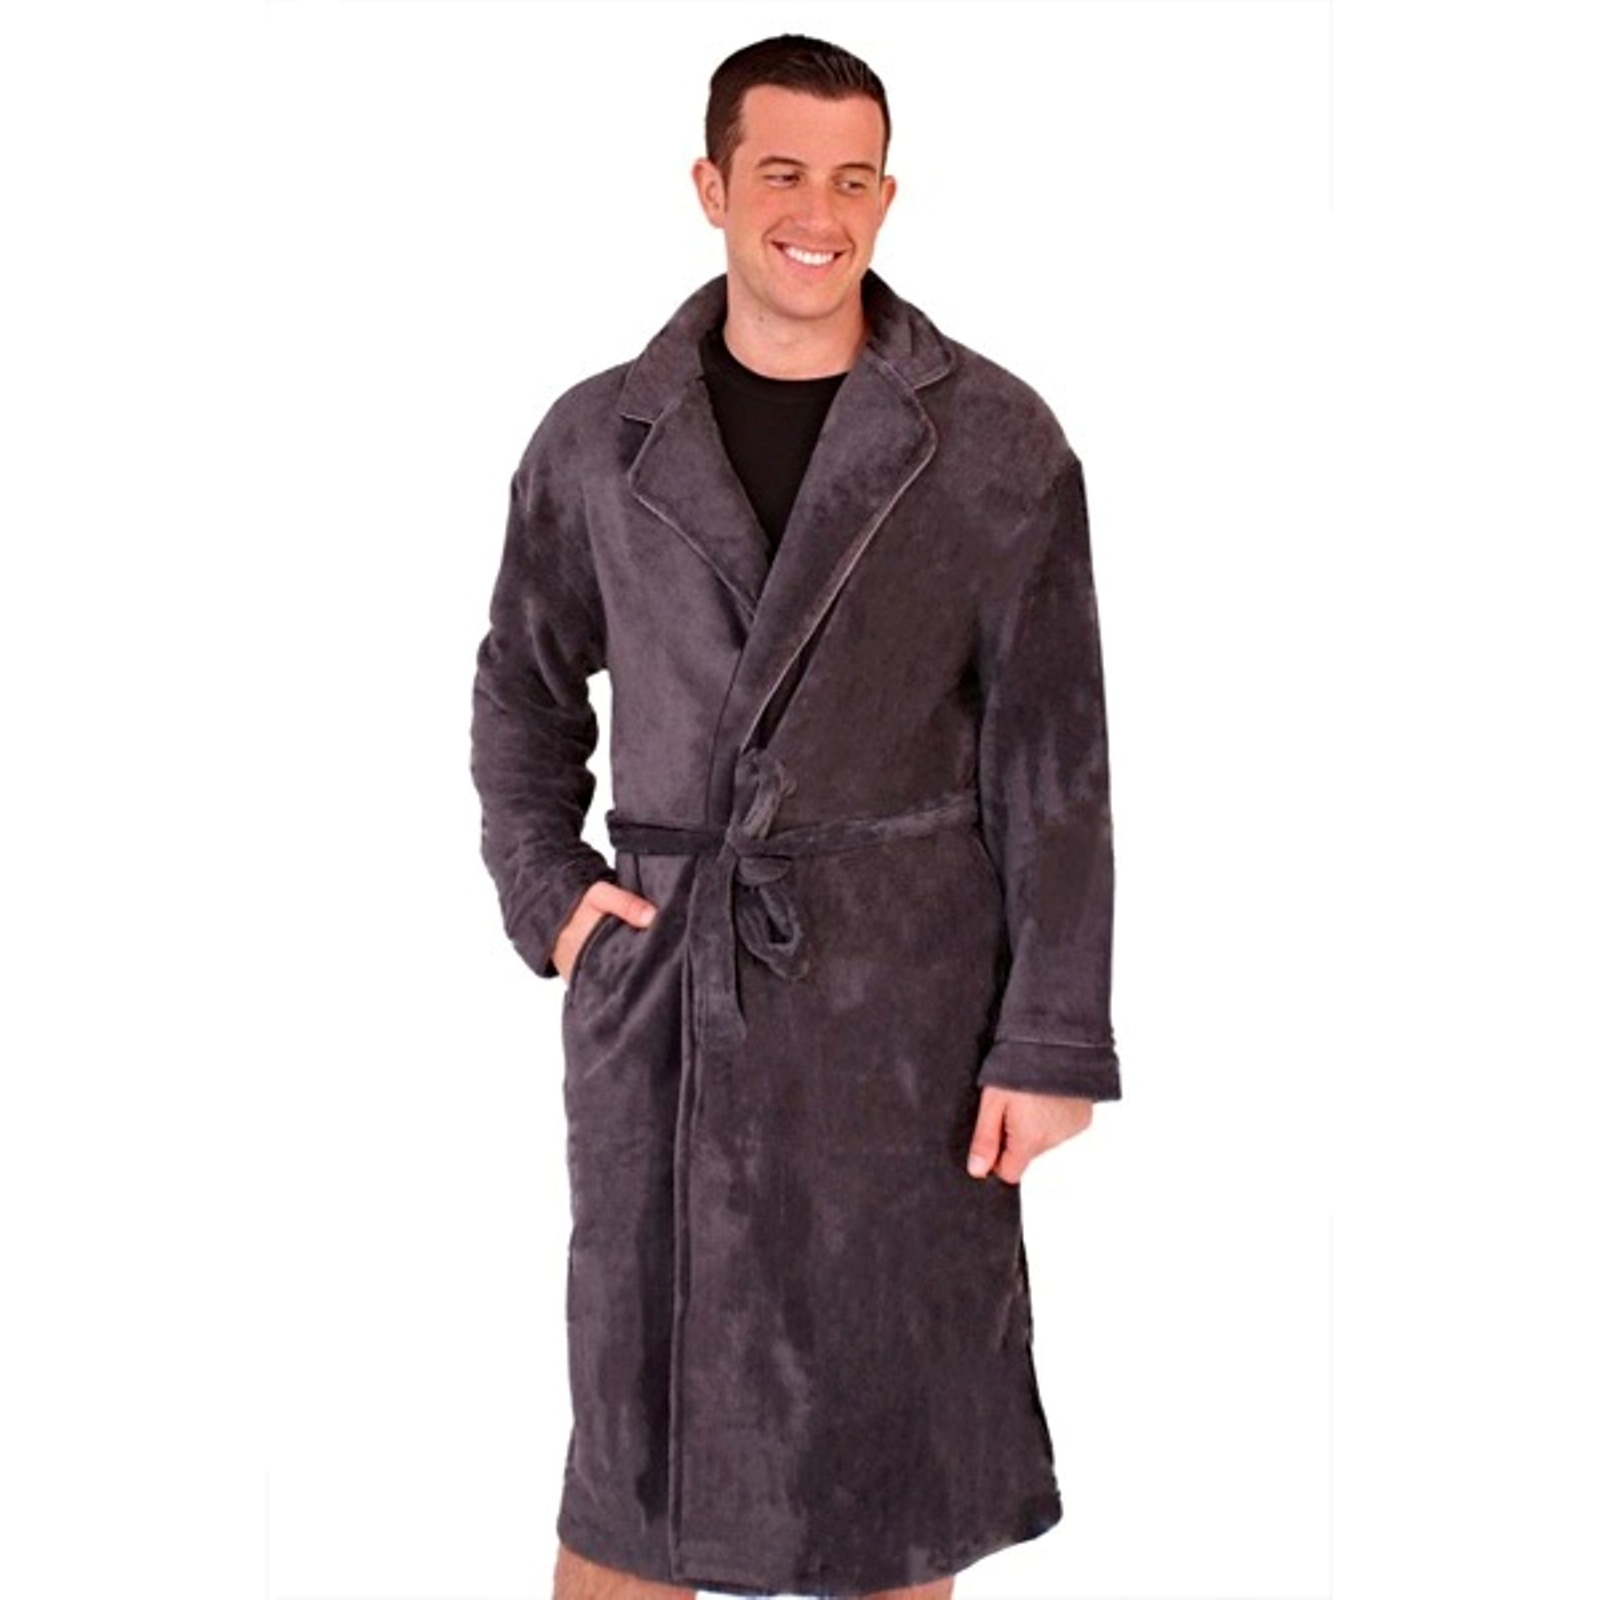 House Coat: Mens Luxury Dressing Gowns Fleece Bath Robes House Coat